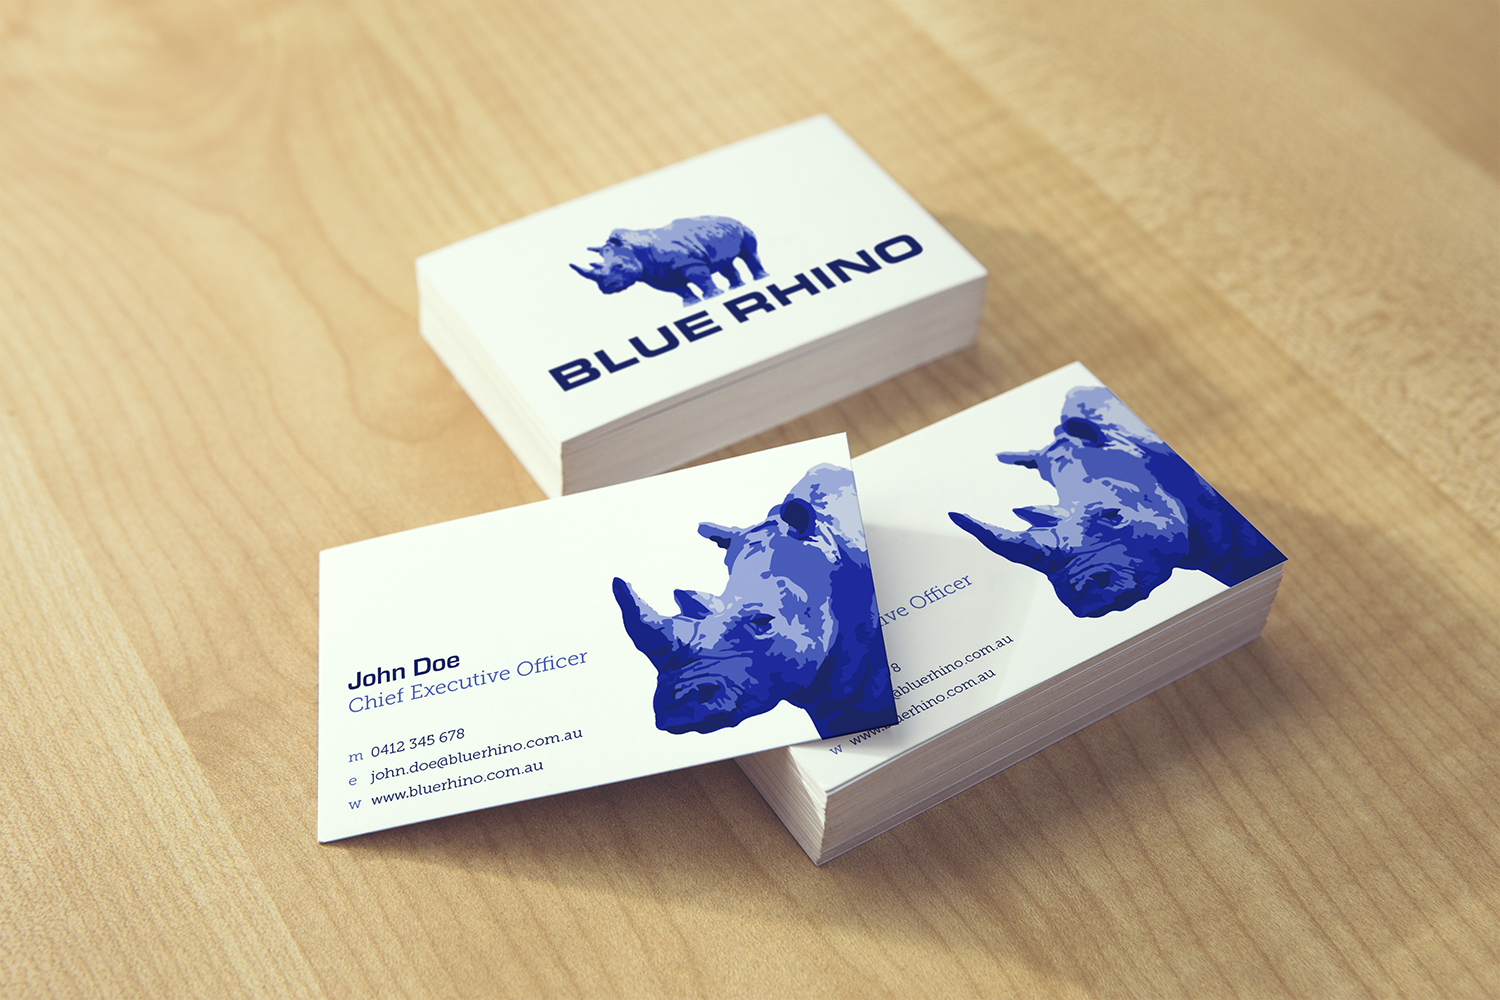 Blue Rhino business cards designed by Six Foot Seven